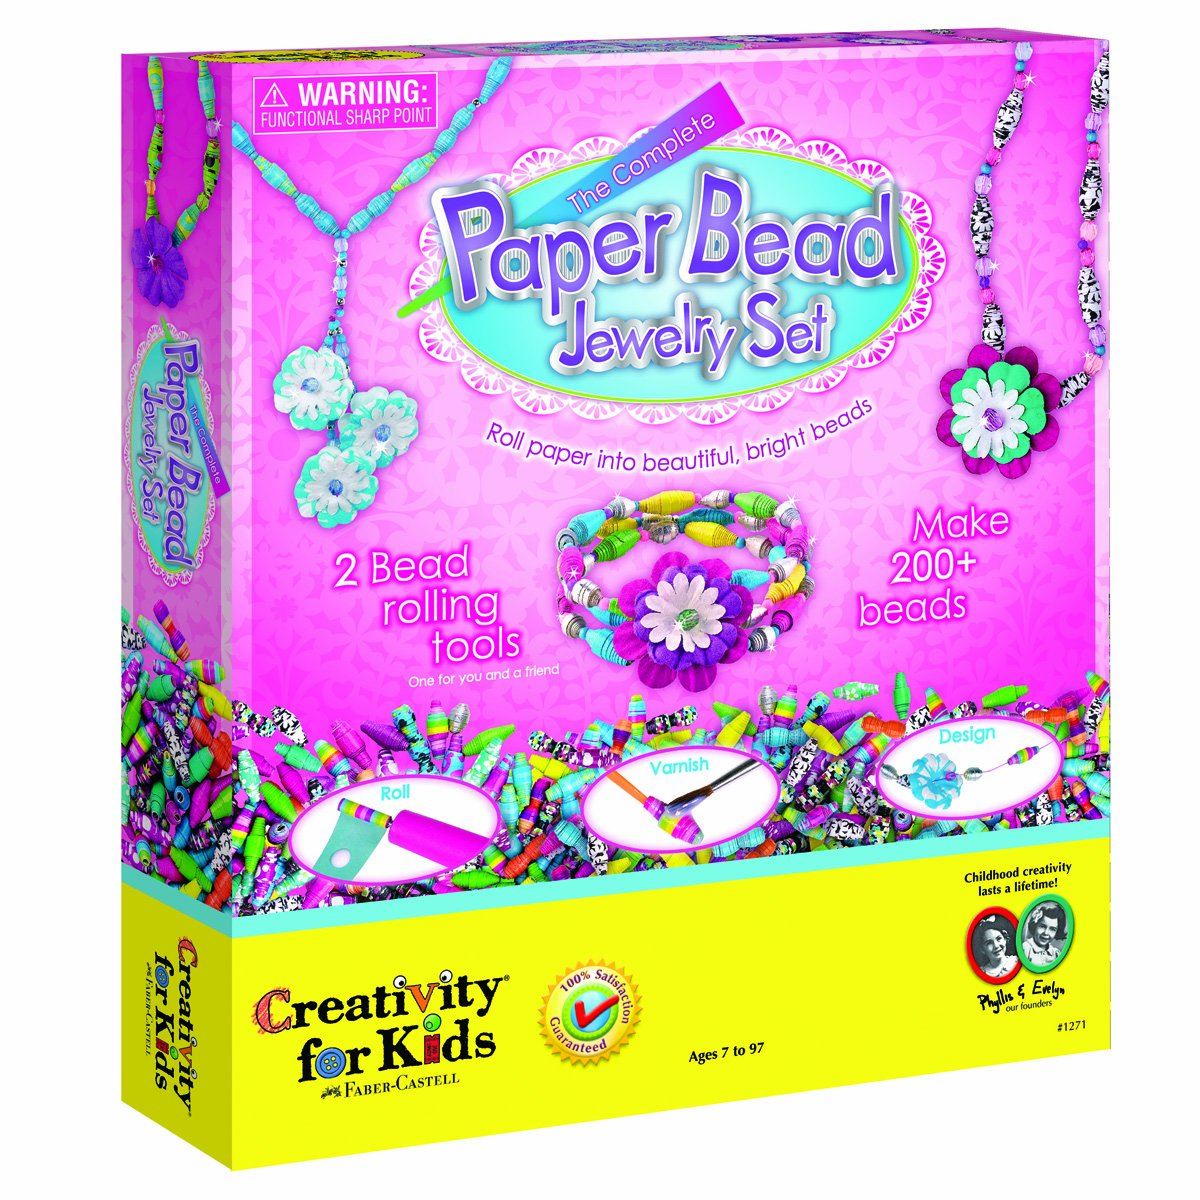 Creativitiy for Kids - The Complete Paper Bead Jewelry Set - Educational Toys